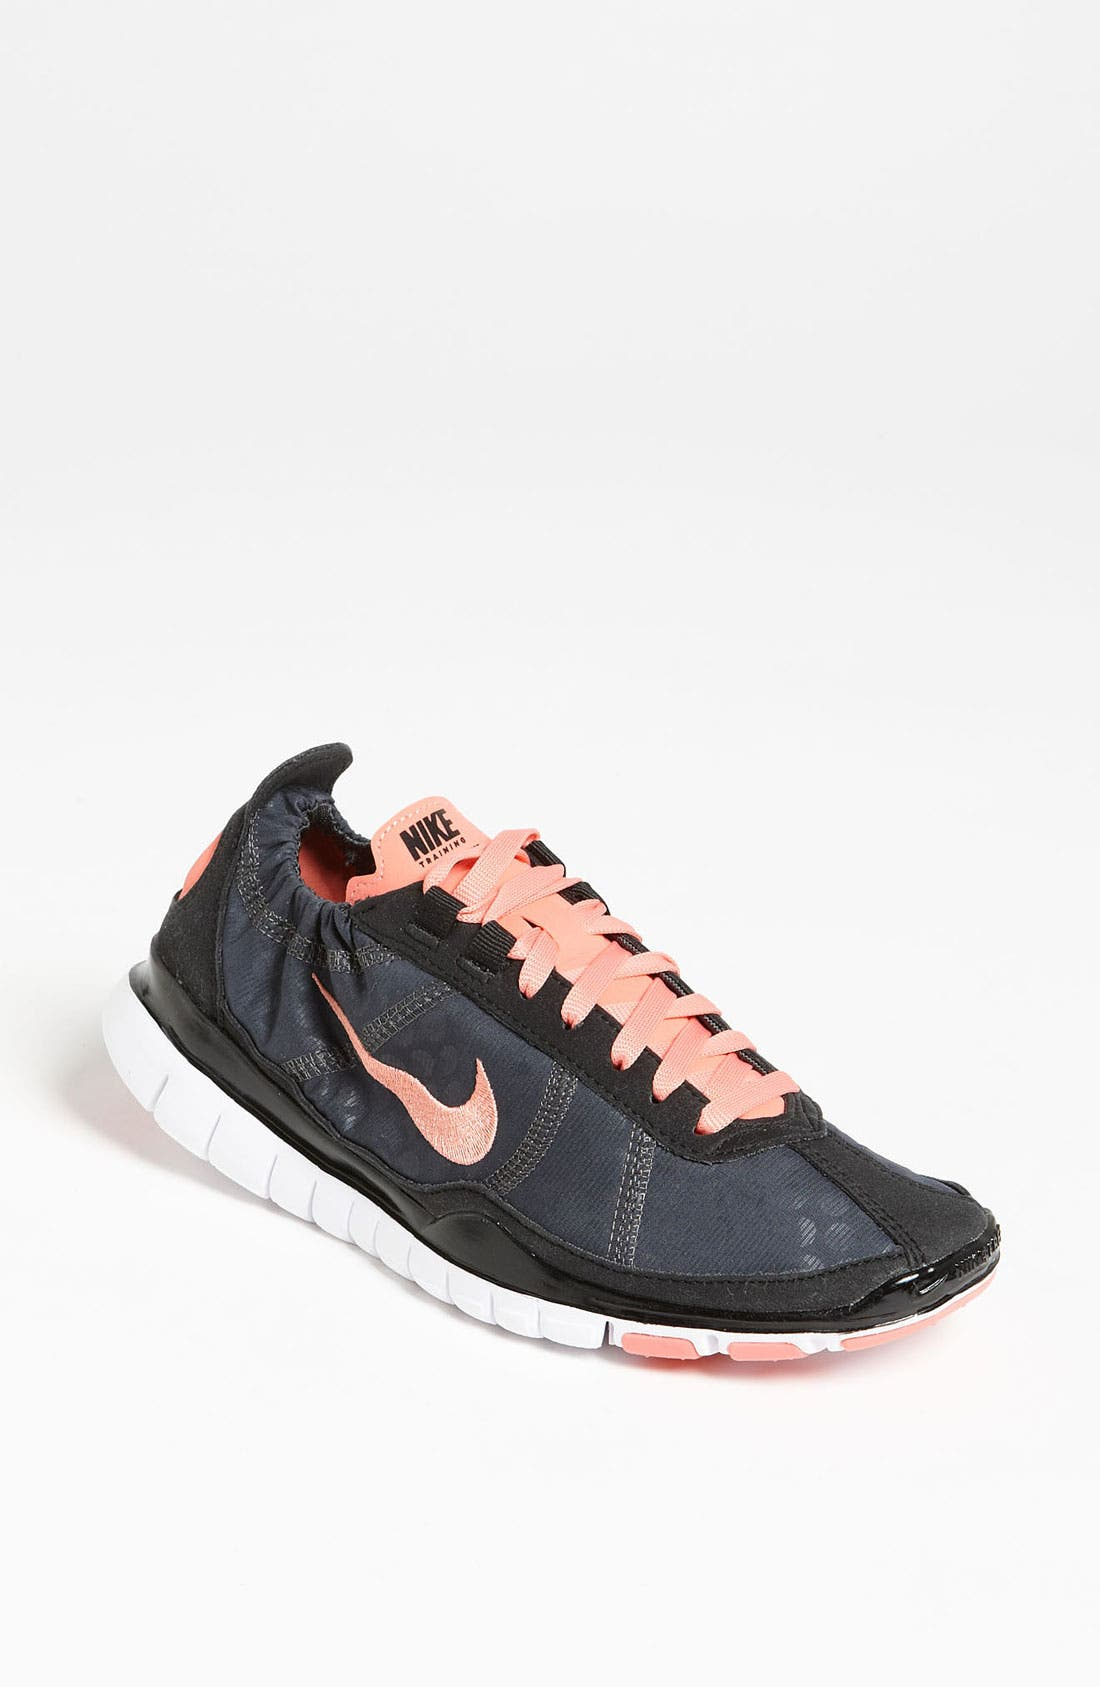 Main Image - Nike 'Free Twist' Training Shoe (Women)